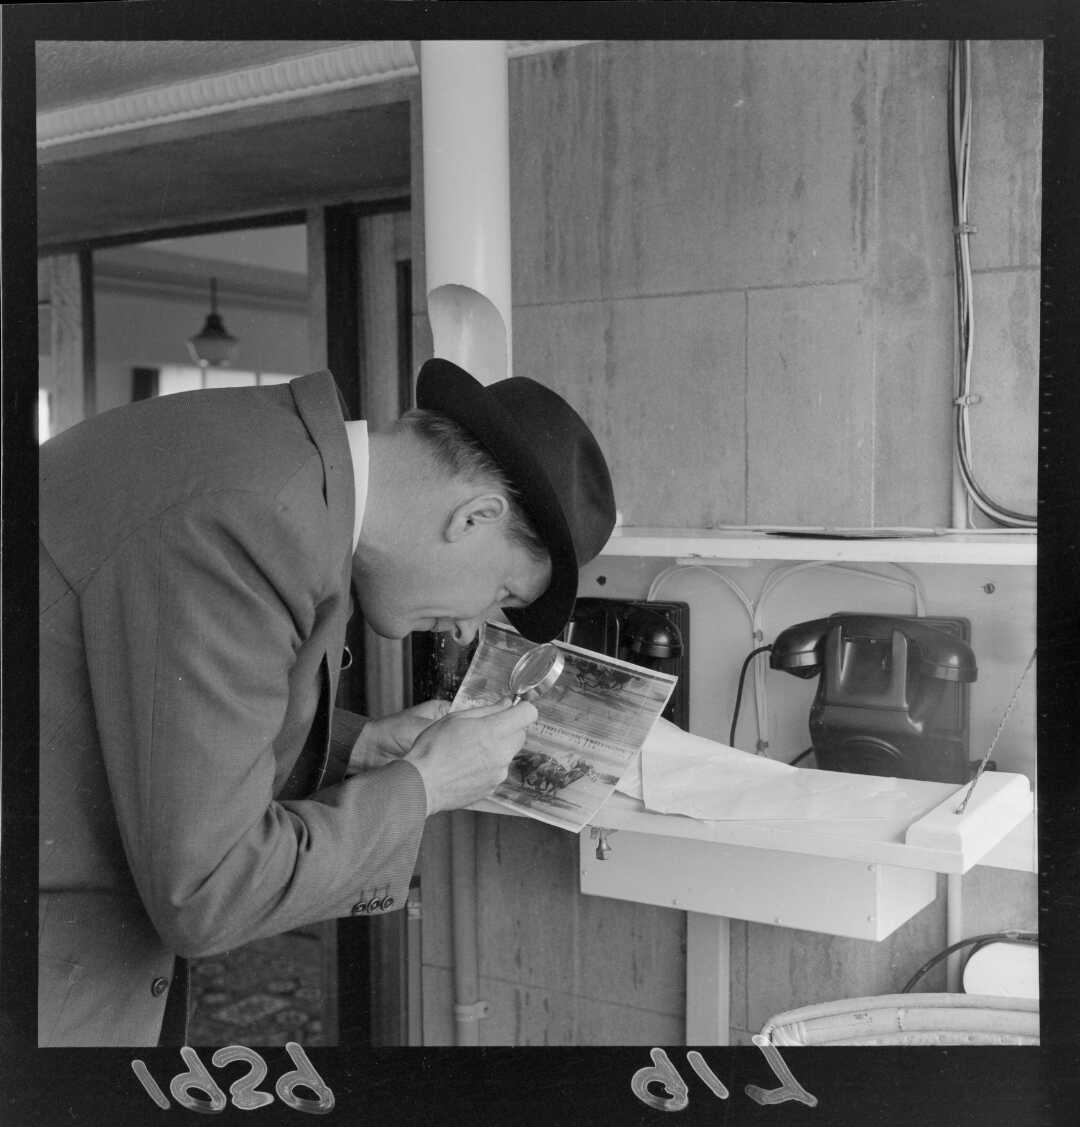 Unidentified man inspecting a photo finish record with a magnifying glass